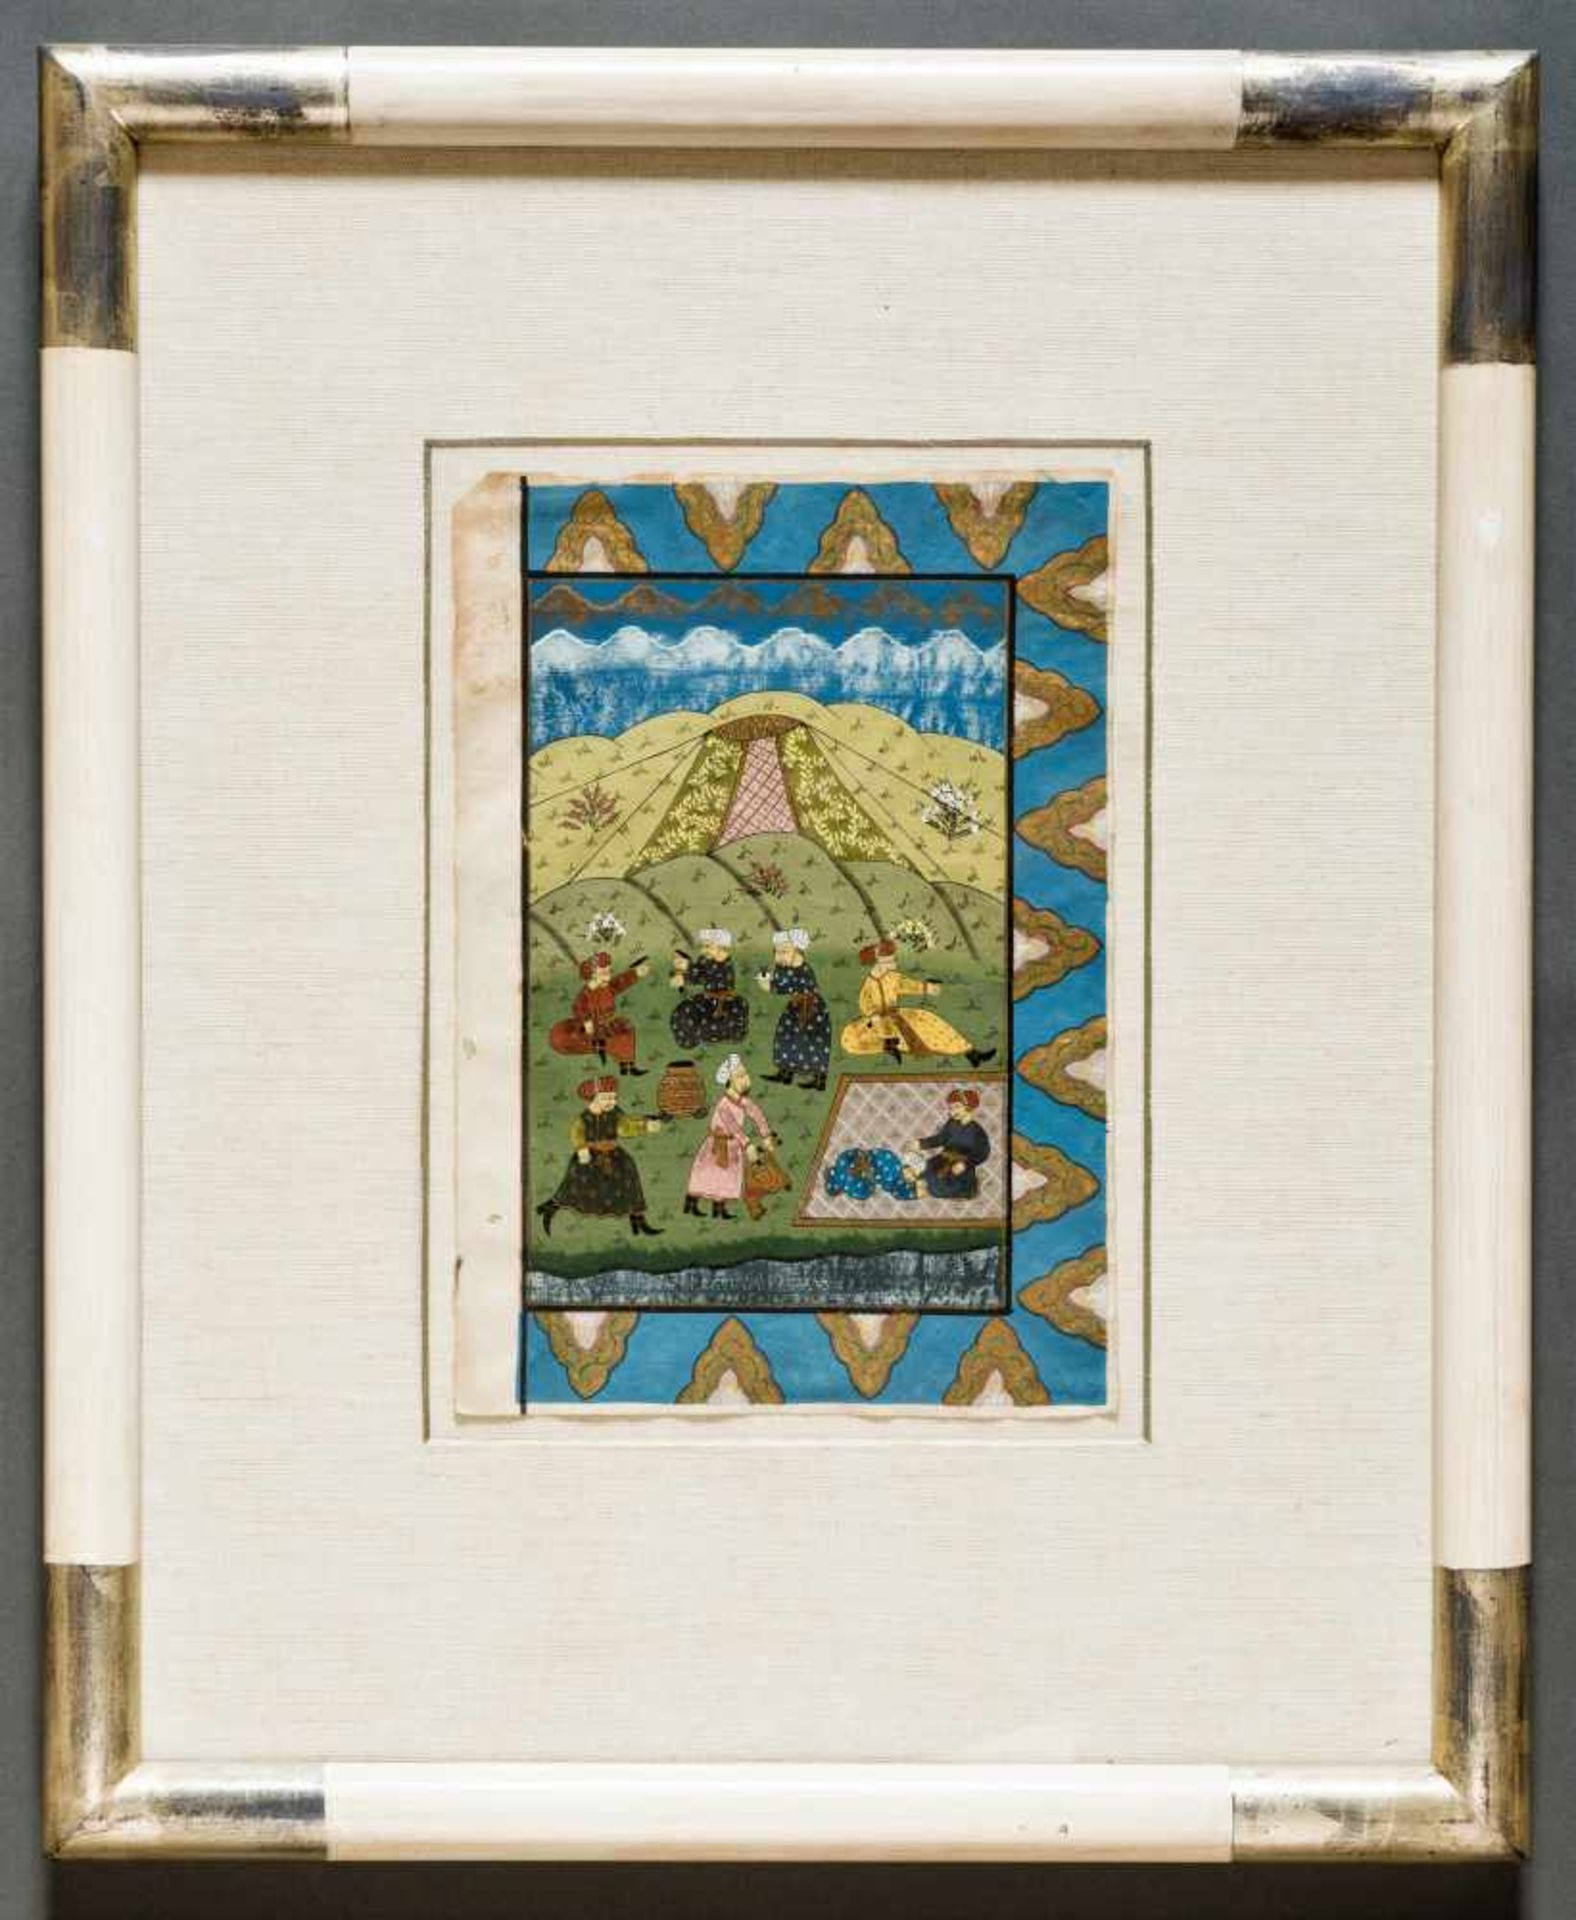 AN INDO-PERSIAN MINIATURE PAINTING - 19th CENTURYMiniature painting with colors and gold on - Image 2 of 2